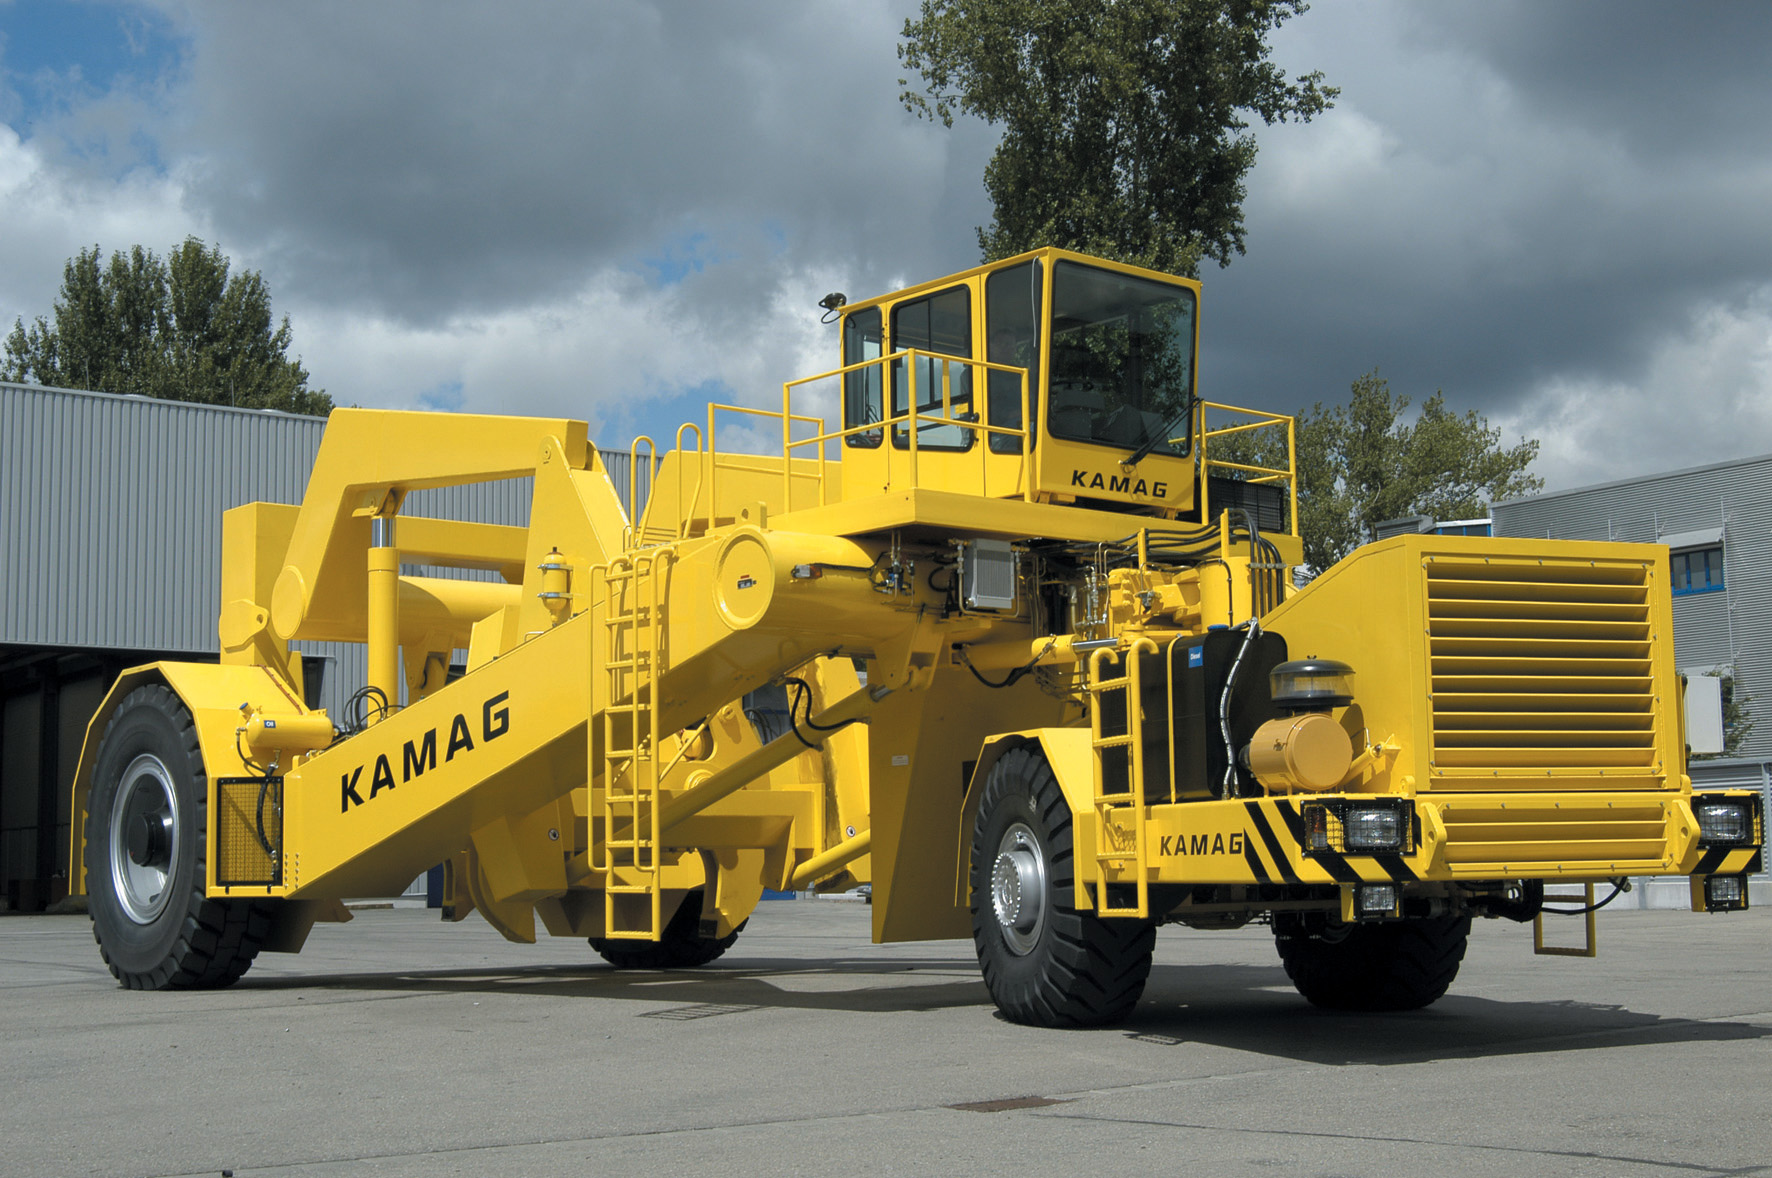 KAMAG Slab Carrier photo 58948